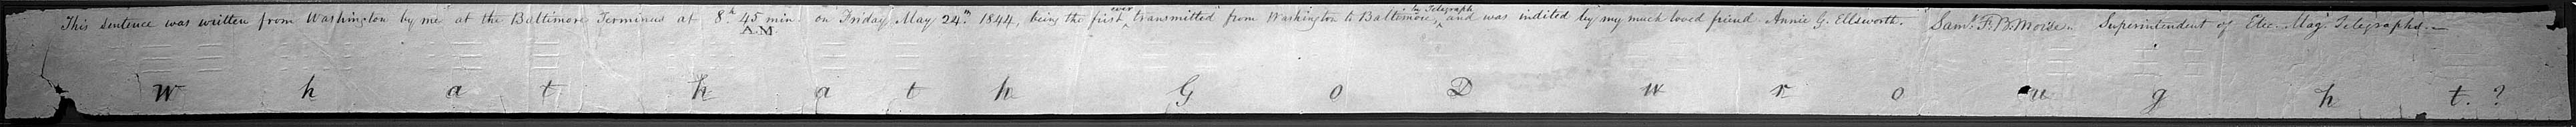 """This sentence was written from Washington by me at the Baltimore Terminus at 8.h 45min. A.M. on Friday May 24.th 1844, being the first ever transmitted from Washington to Baltimore by Telegraph and was indited by my much loved friend Annie G. Ellsworth."" {signature-Sam F. B. Morse.} Superintendent of Elec. Mag. Telegraphs."